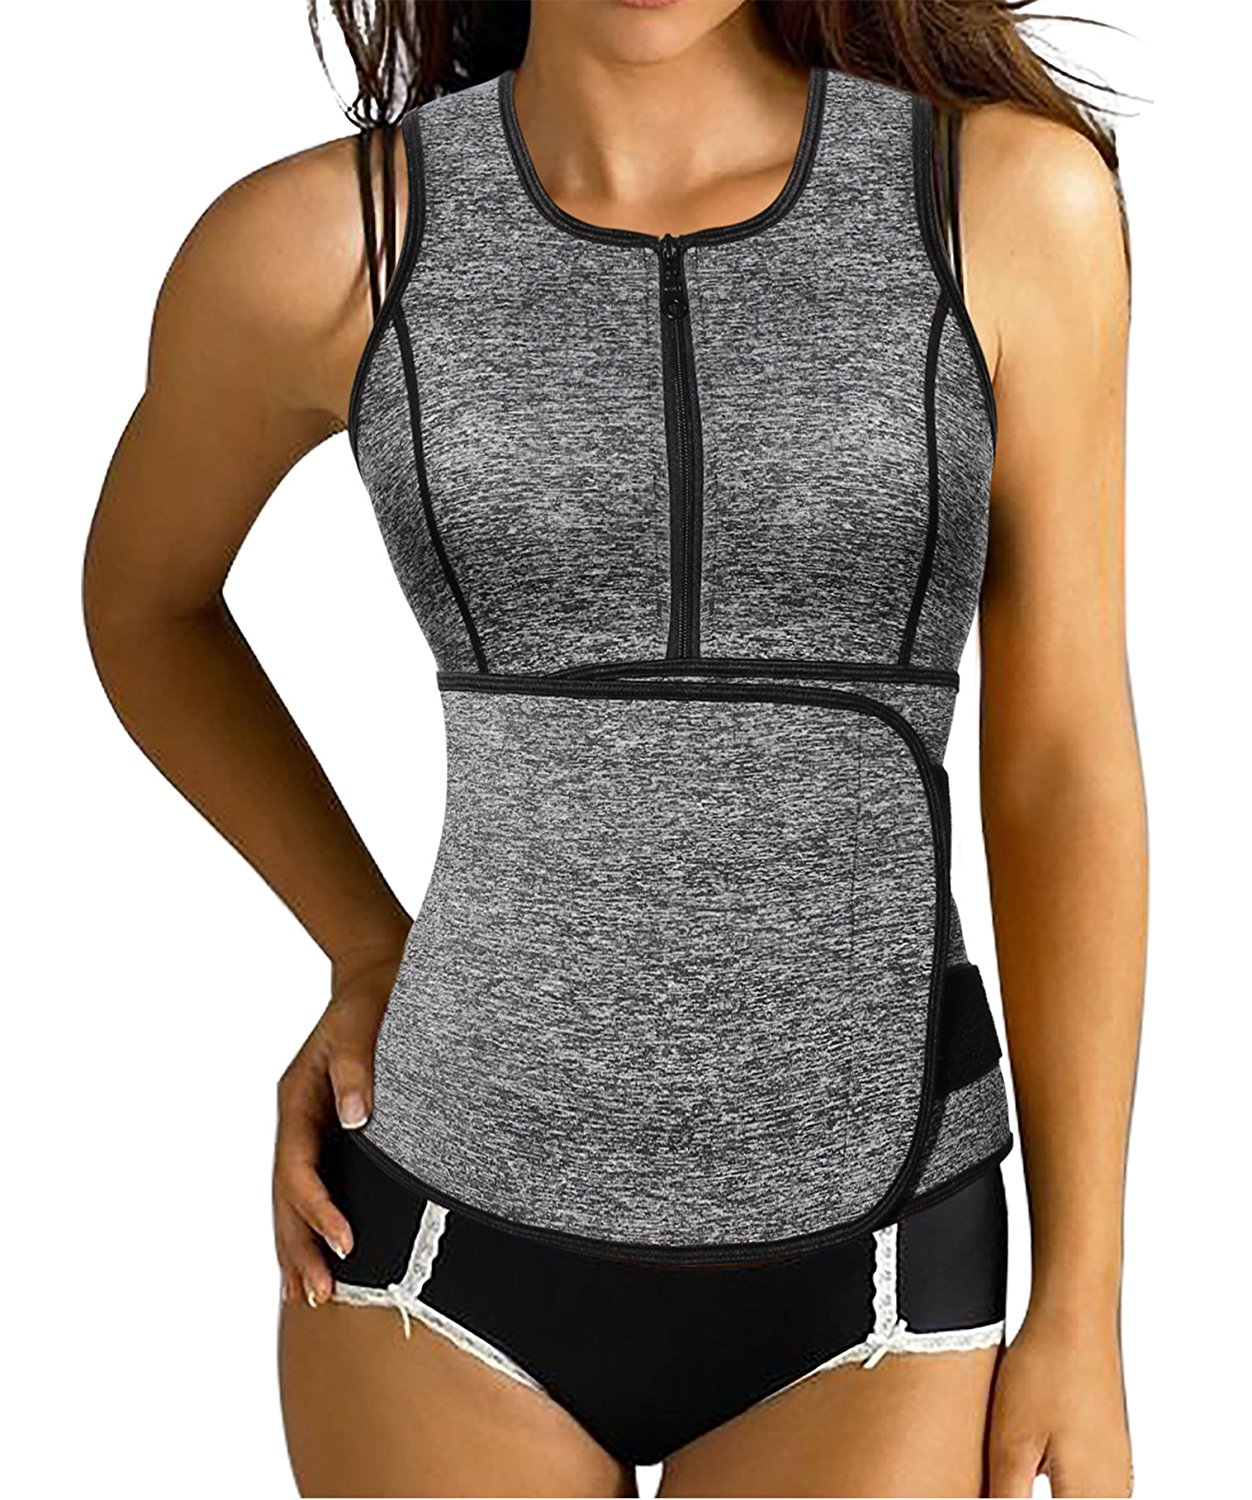 131c2812b44 Get Quotations · Ursexyly Girdle Vest Zipper Combination Trainer Body Shaper  for Excercise Sweating Slimming